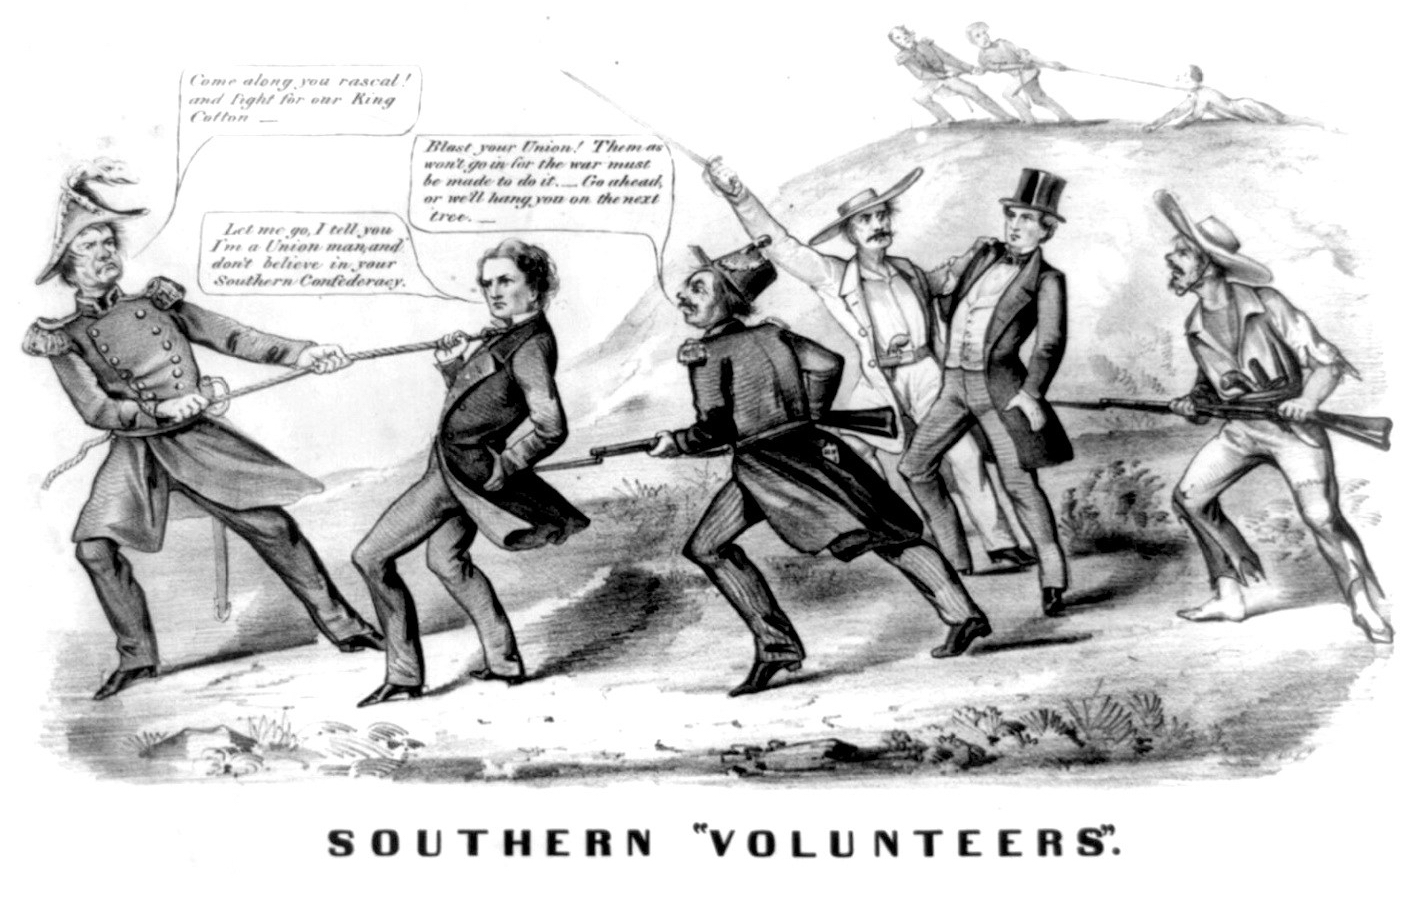 SouthernConscription